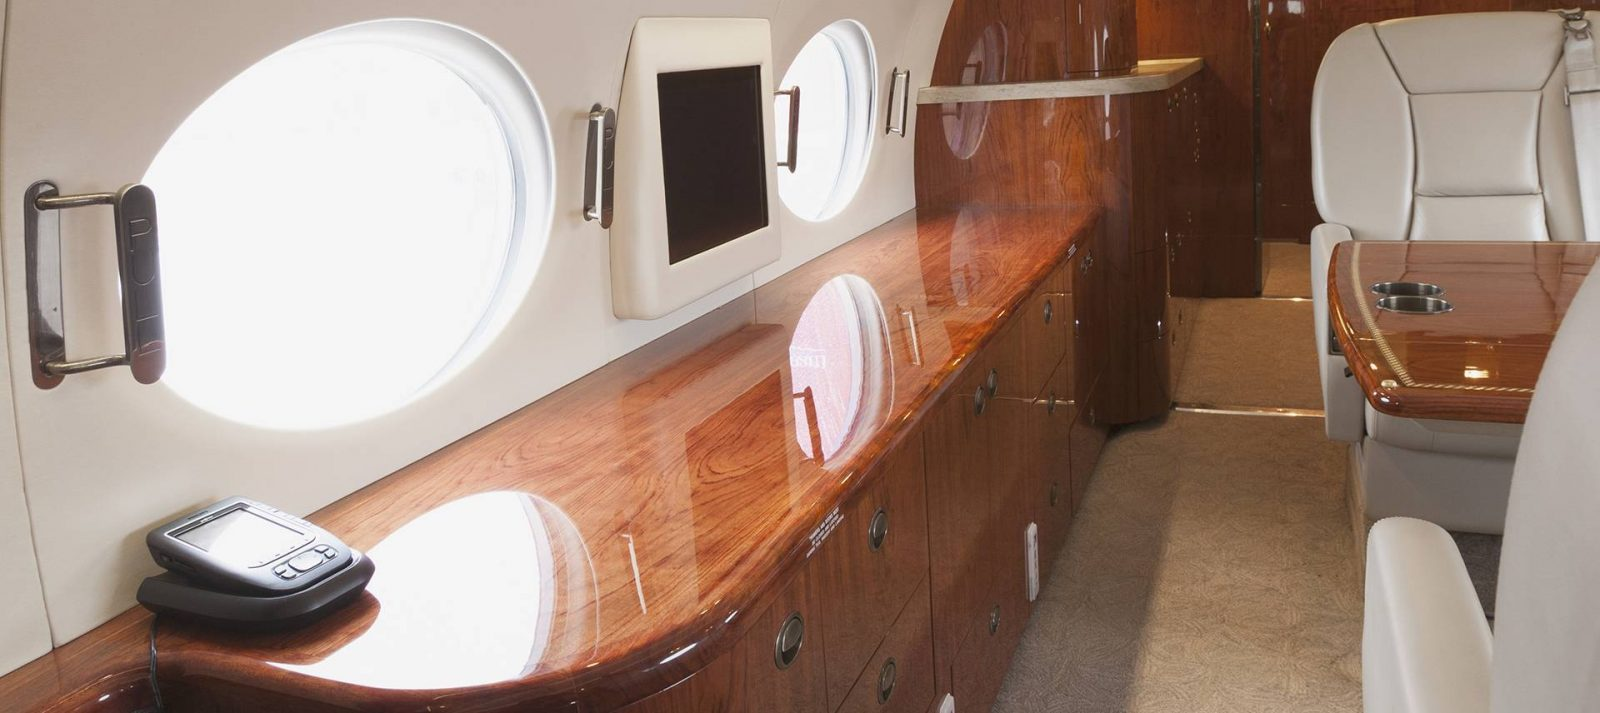 Gi nterior - private jets - air charter